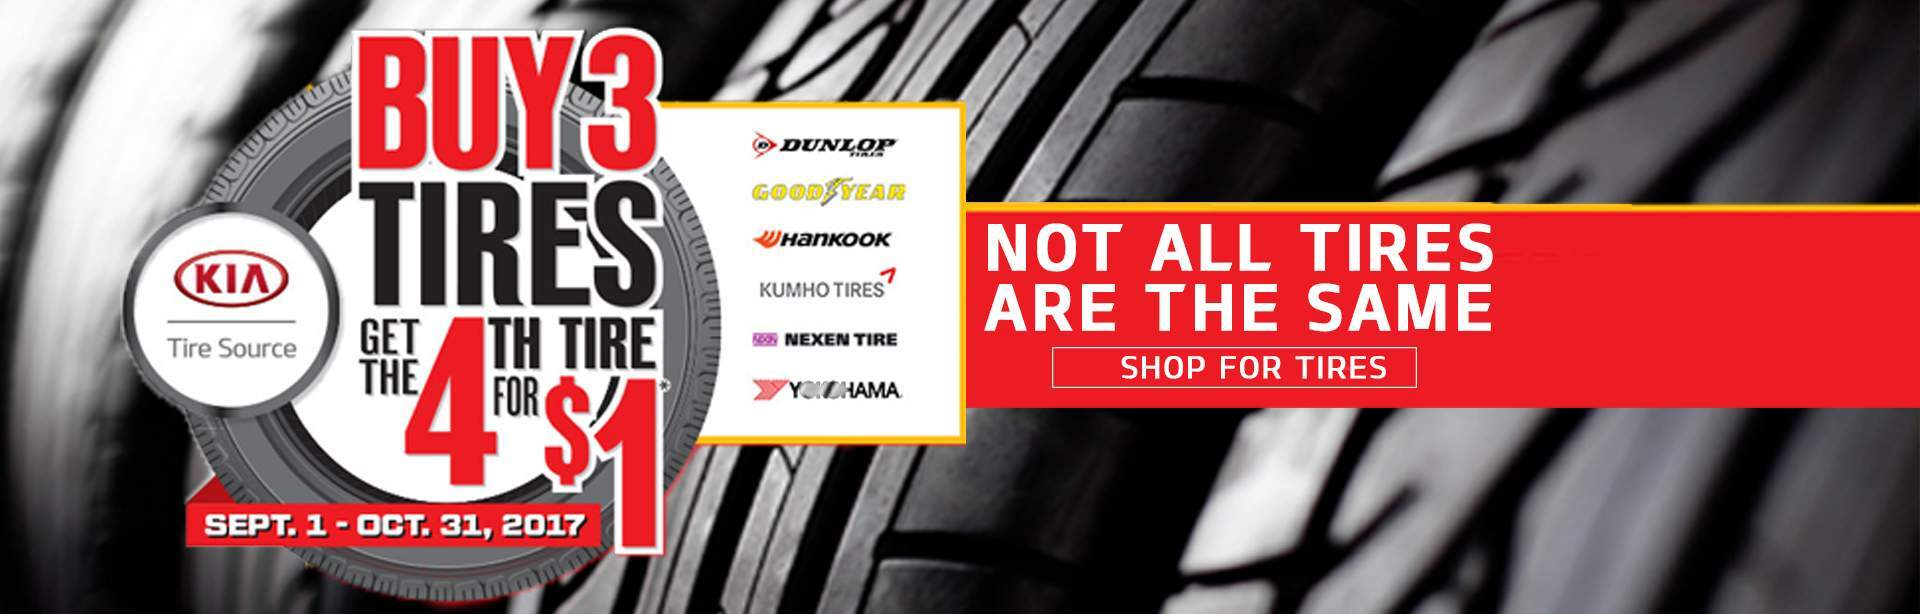 Tire Offer - Buy 3 Get 1 for $1